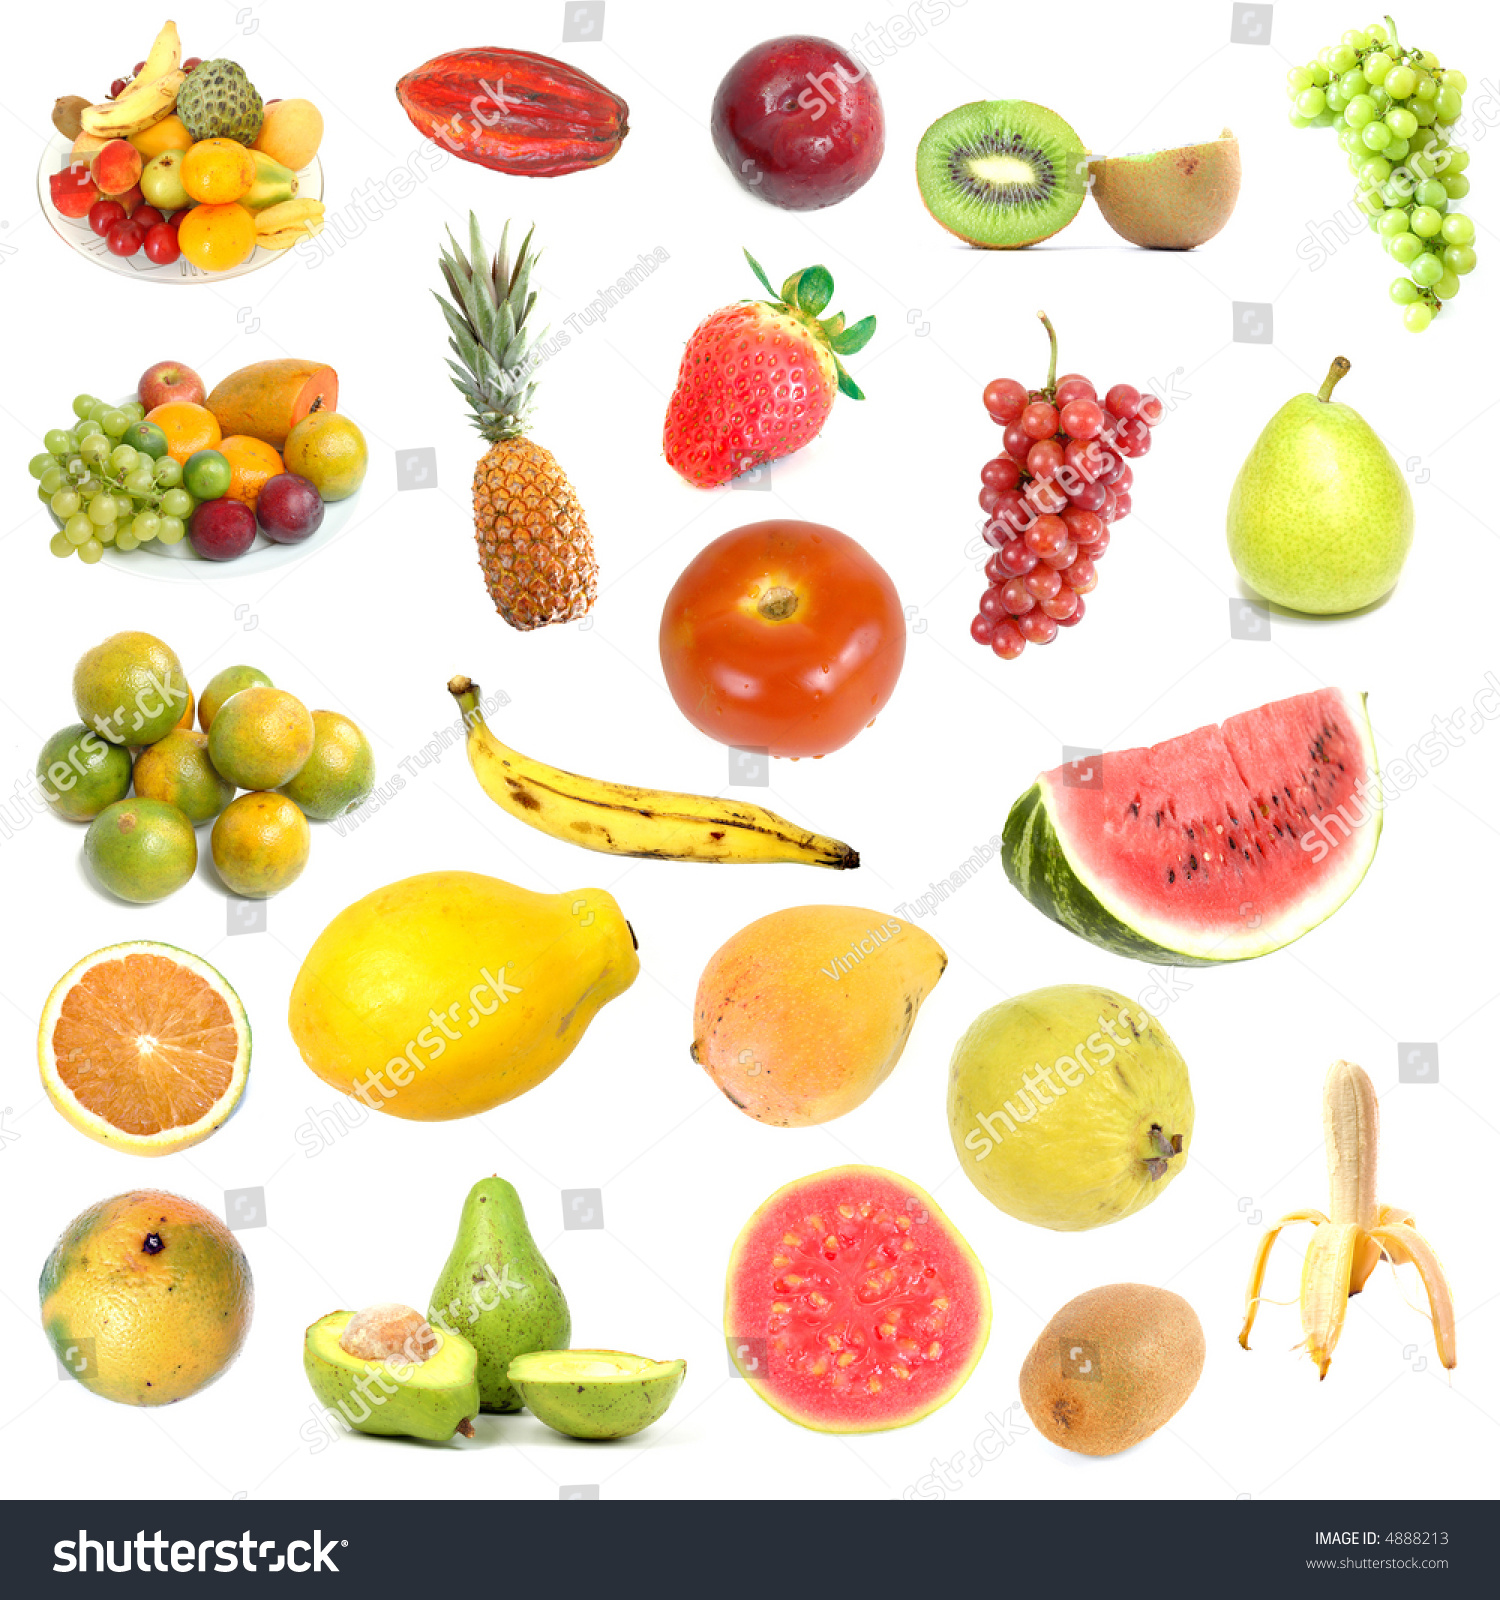 Collection Several Types Fruits 2 Stock Photo 4888213 - Shutterstock